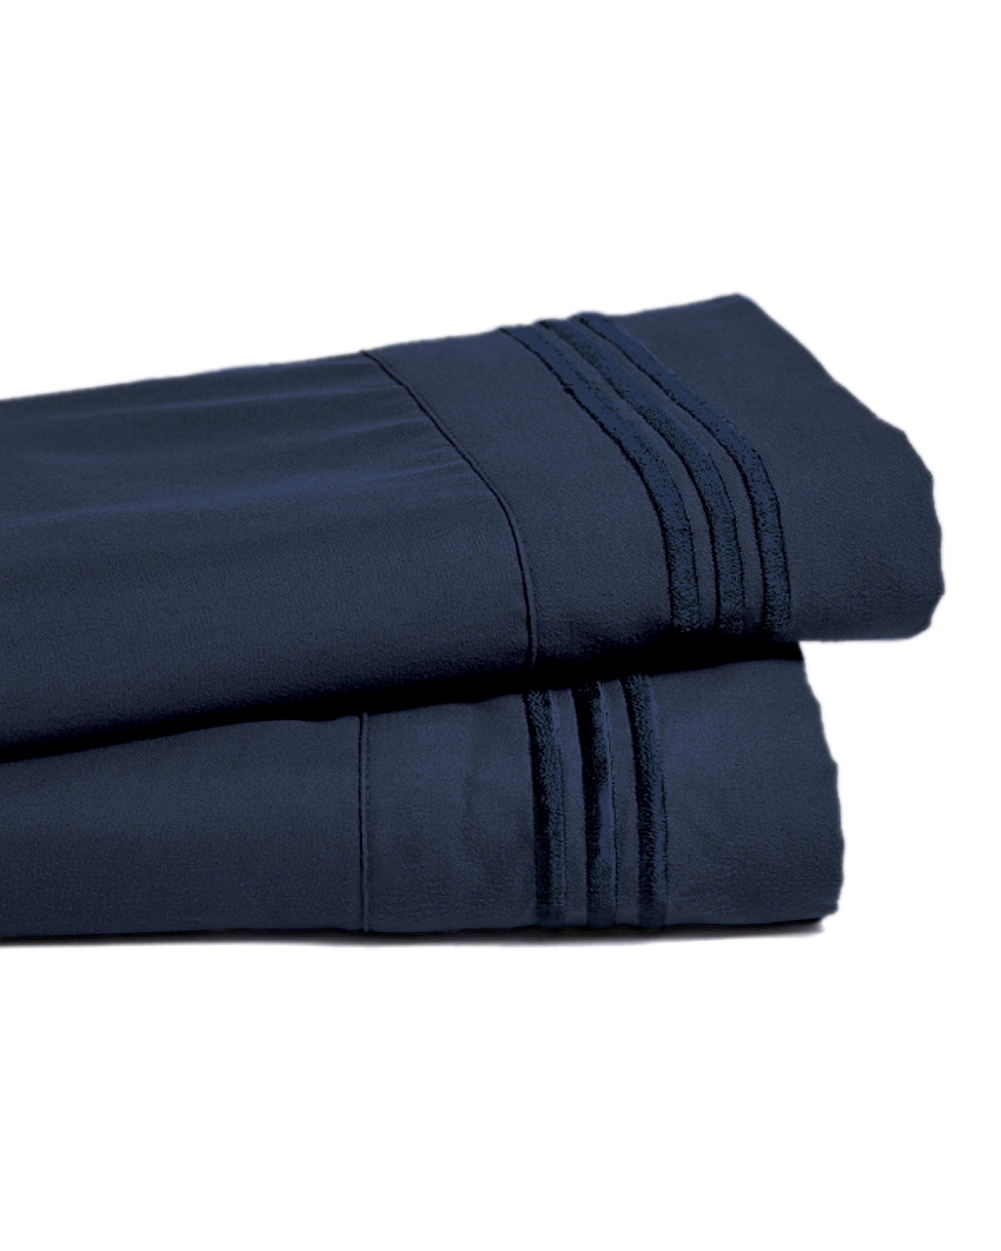 Deep Pocket Bamboo Bed Sheet - Luxury 2200 Embroidered Wrinkle, Fade and Stain Resistant Sheets - Navy Full Size